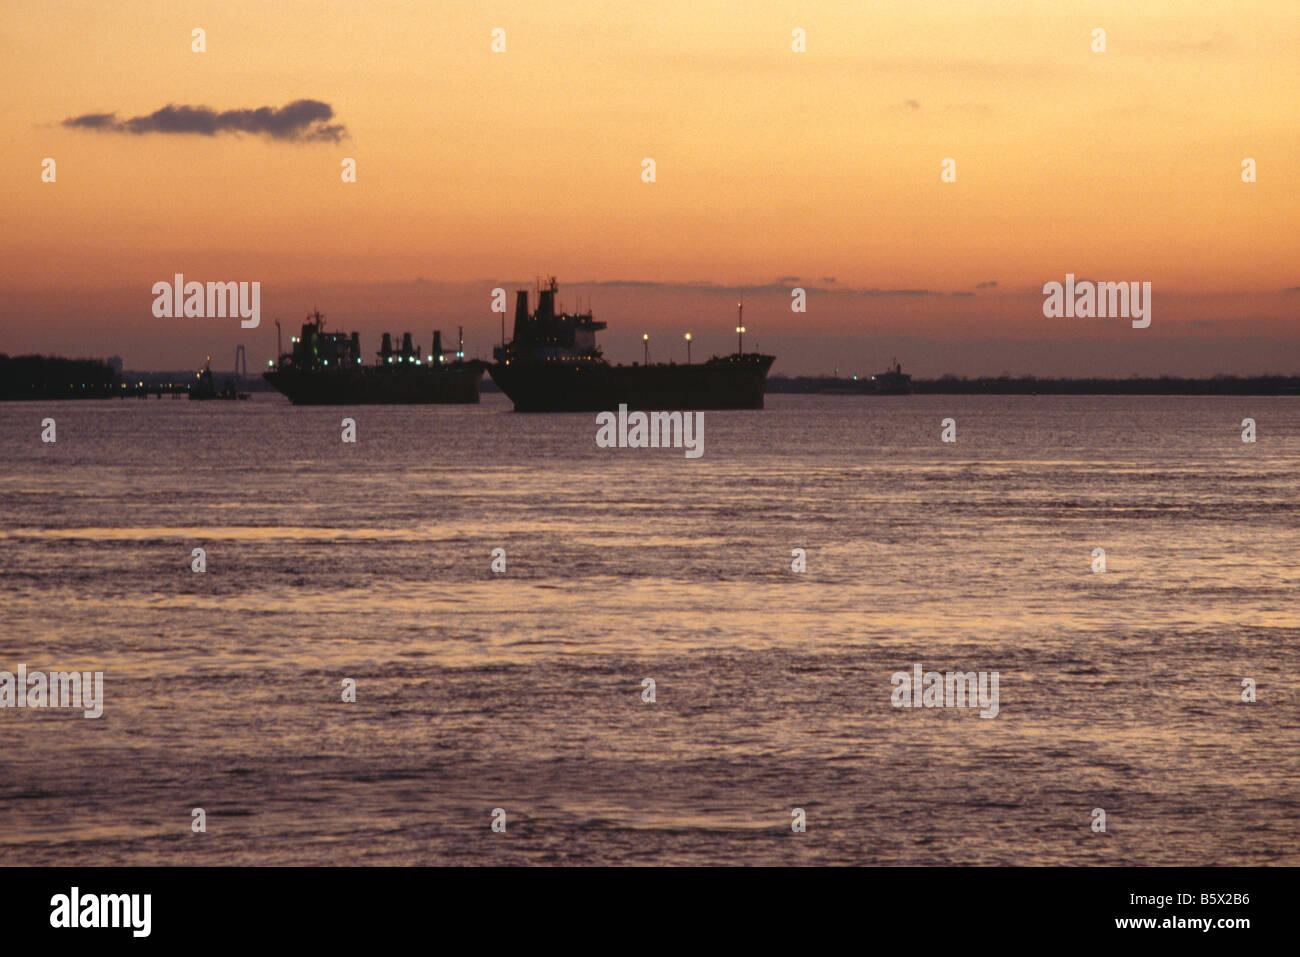 Ships on the Mississippi River near New Orleans Louisiana USA - Stock Image